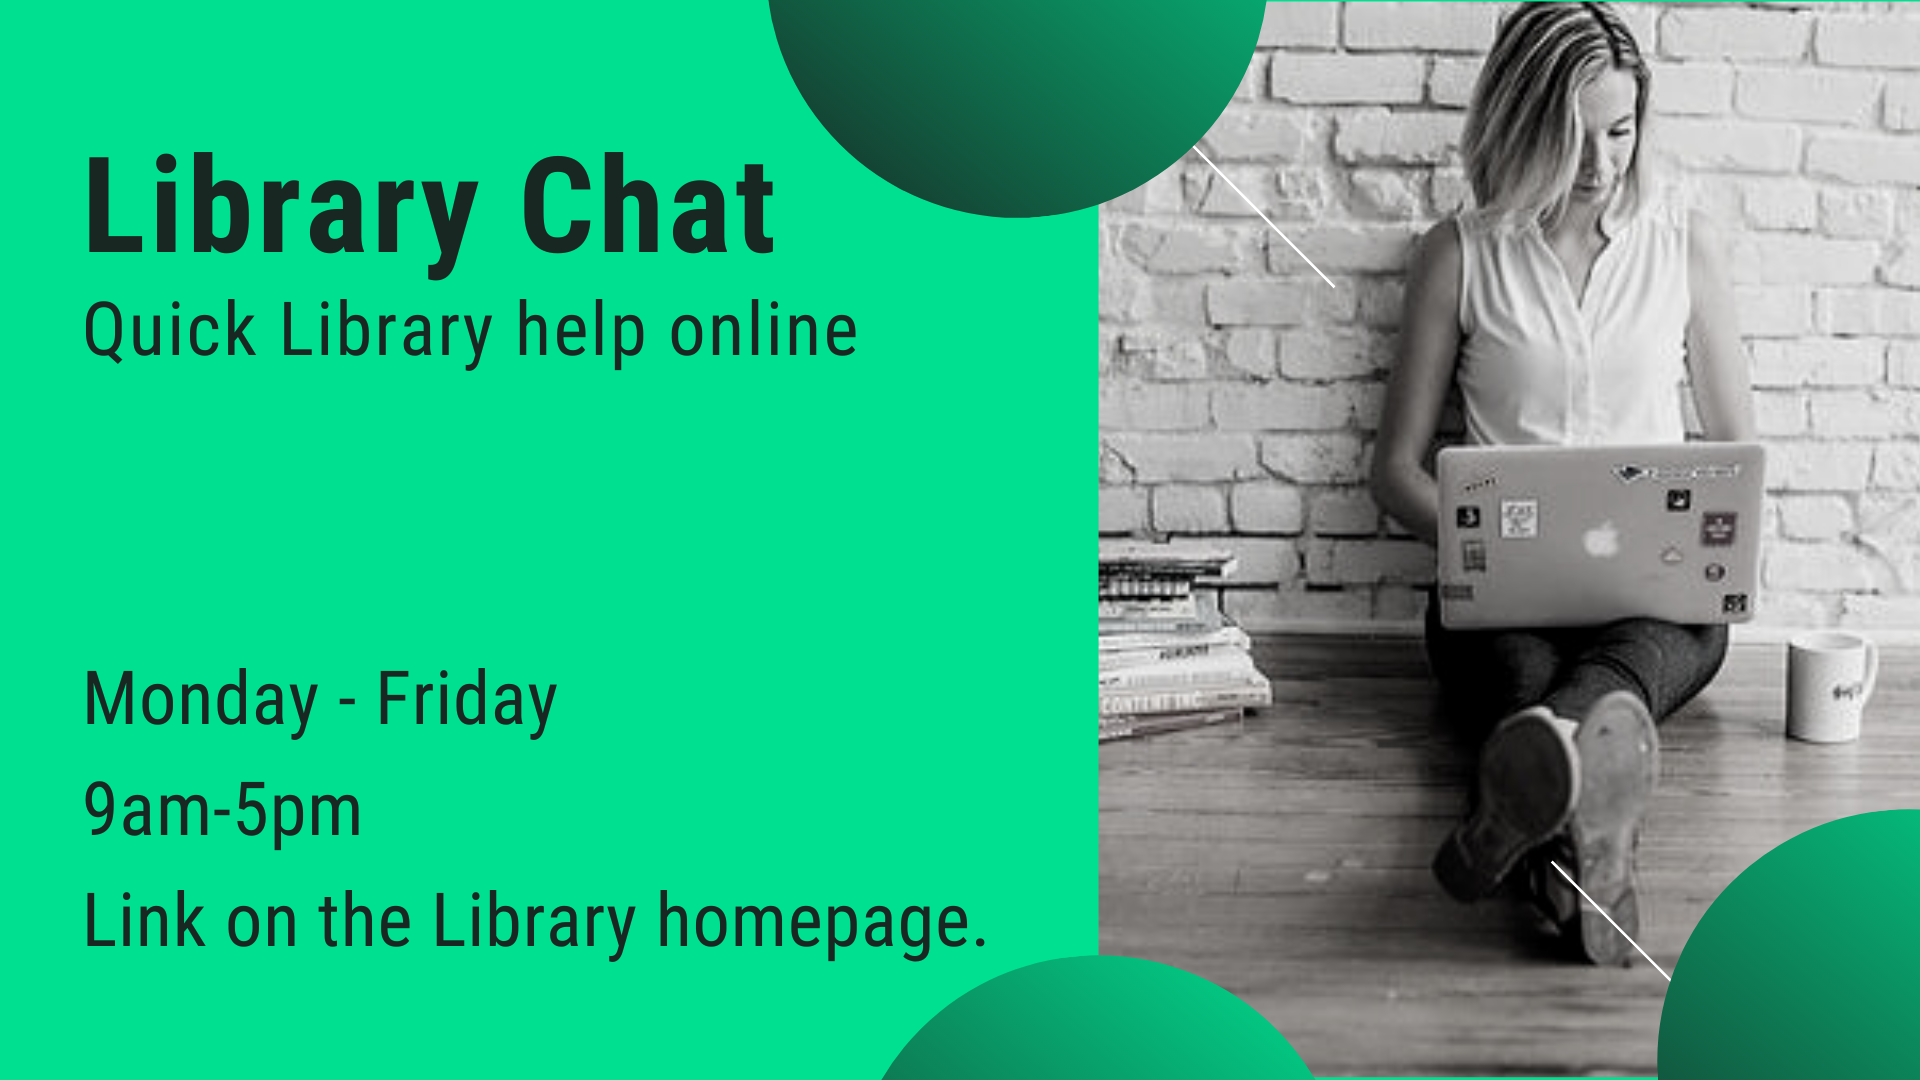 Click here to open Library Chat